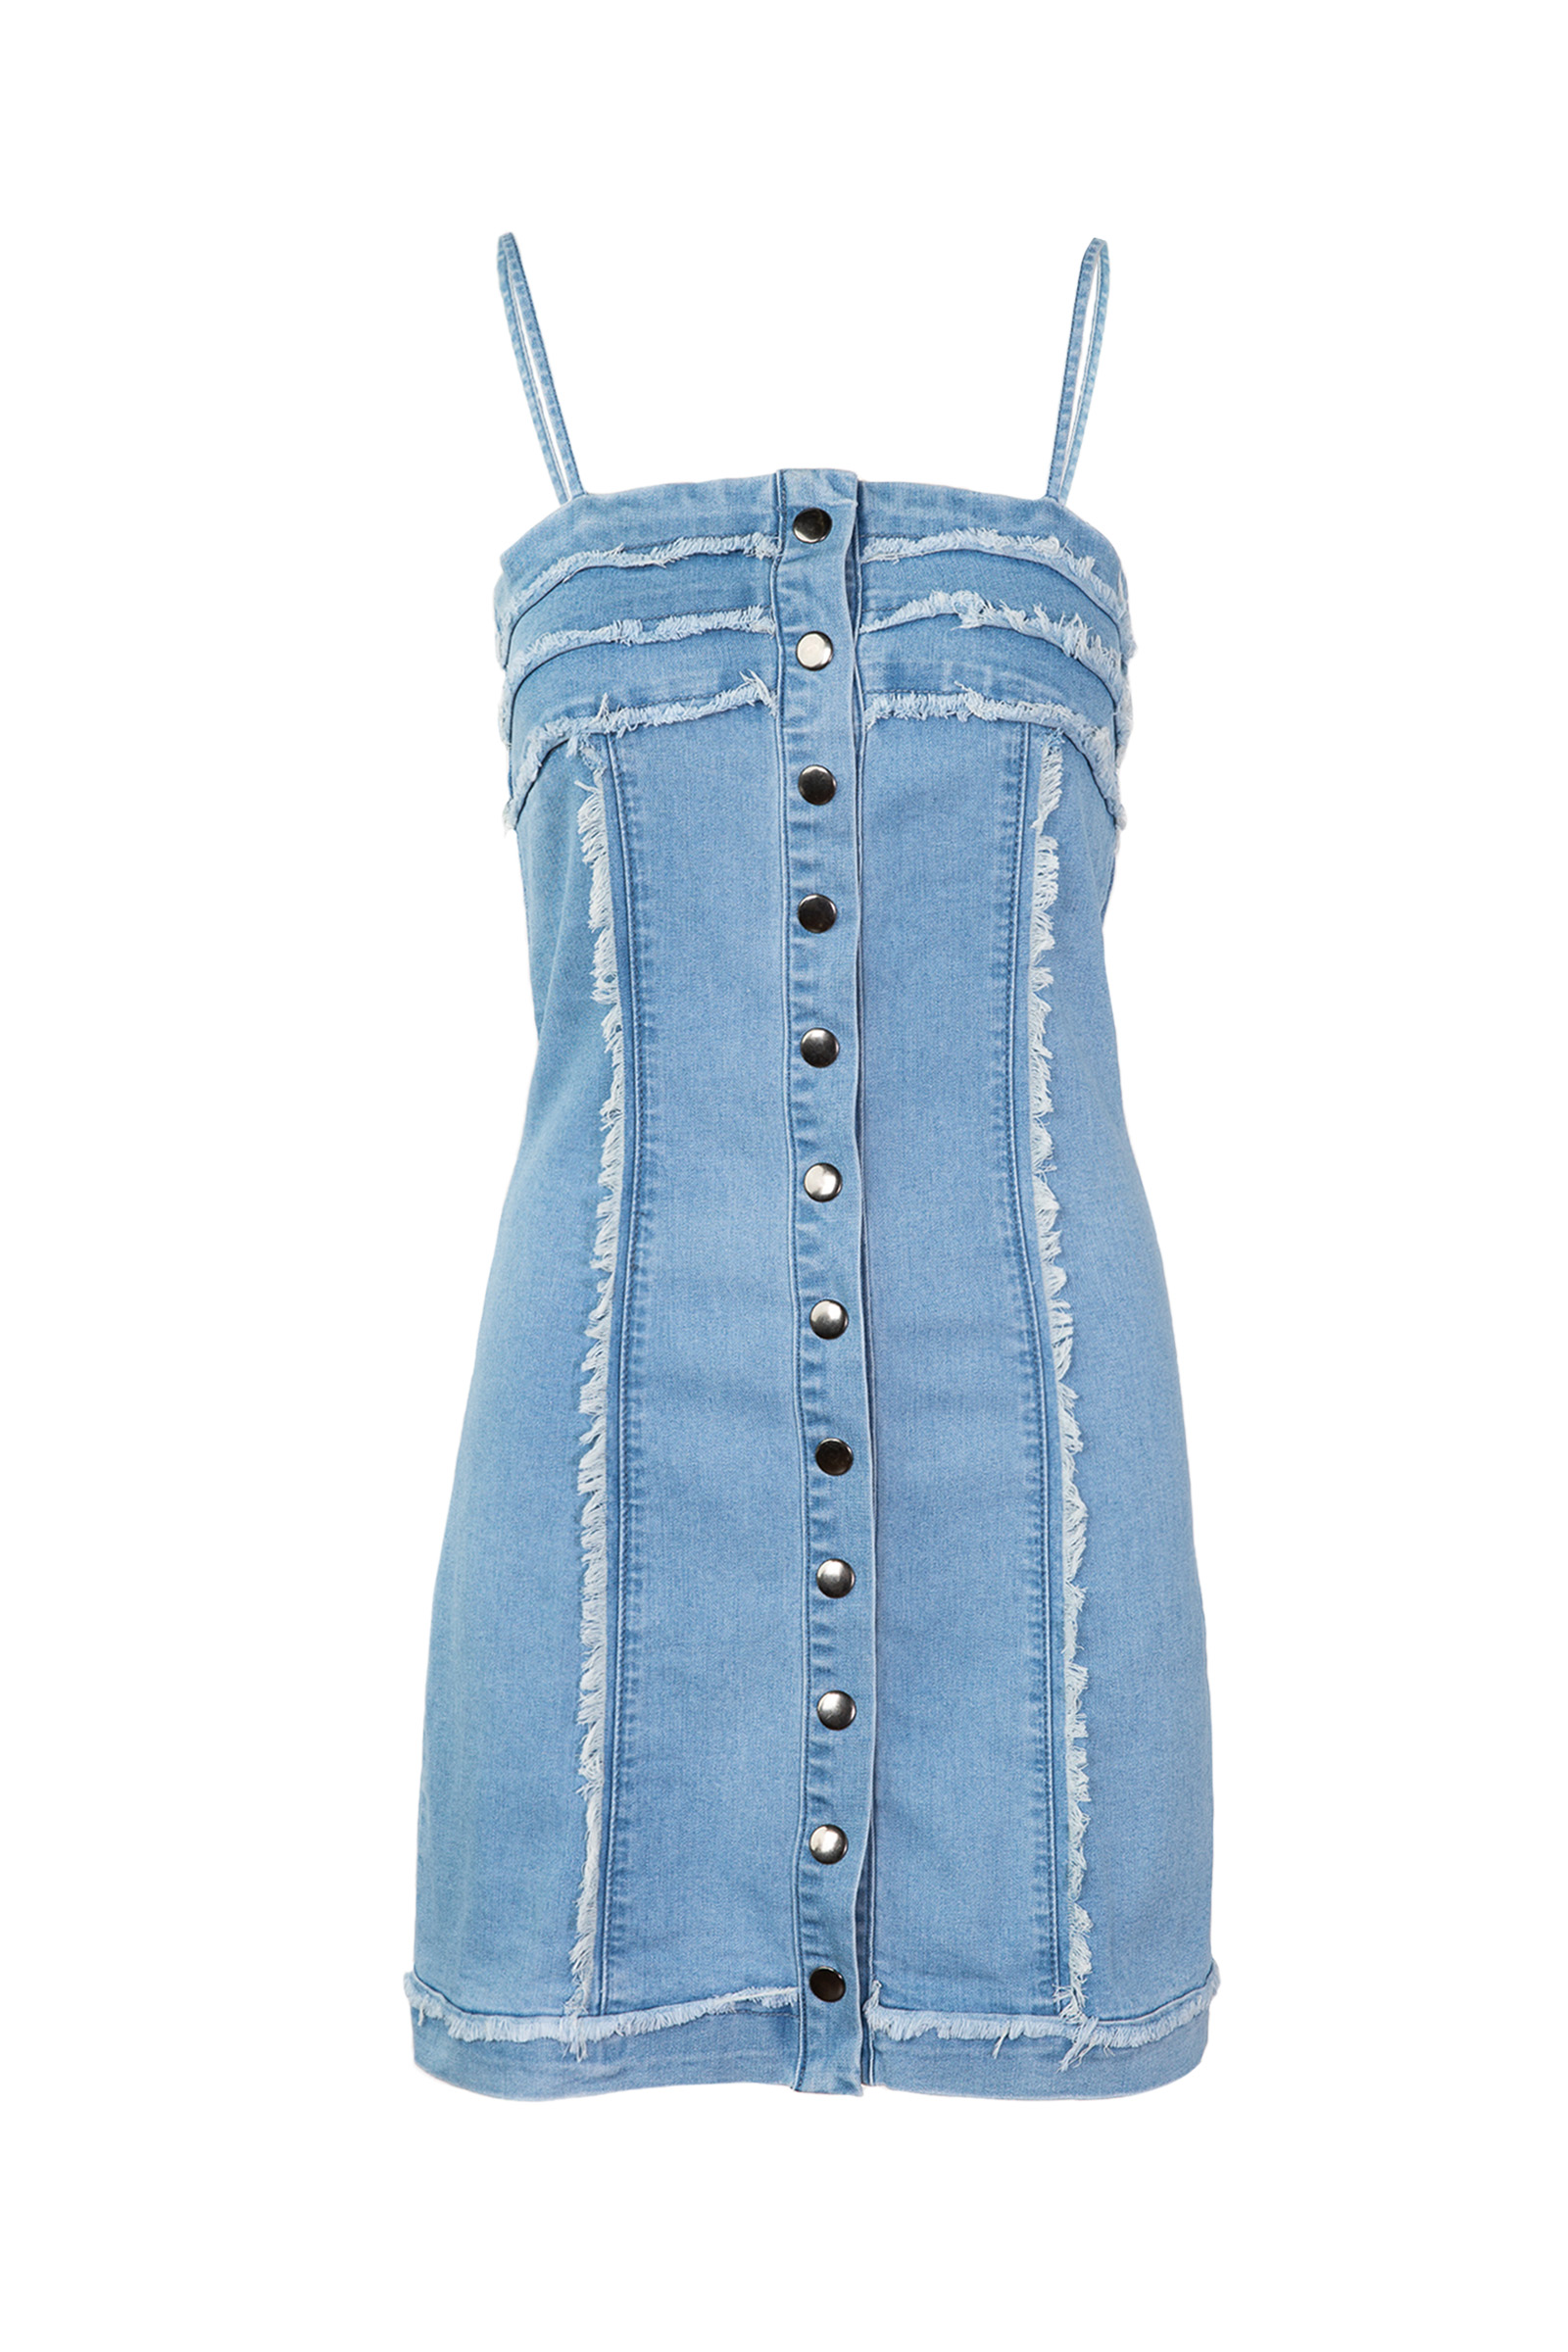 Britney in Denim Dress by J.ING LA women's fashion clothing